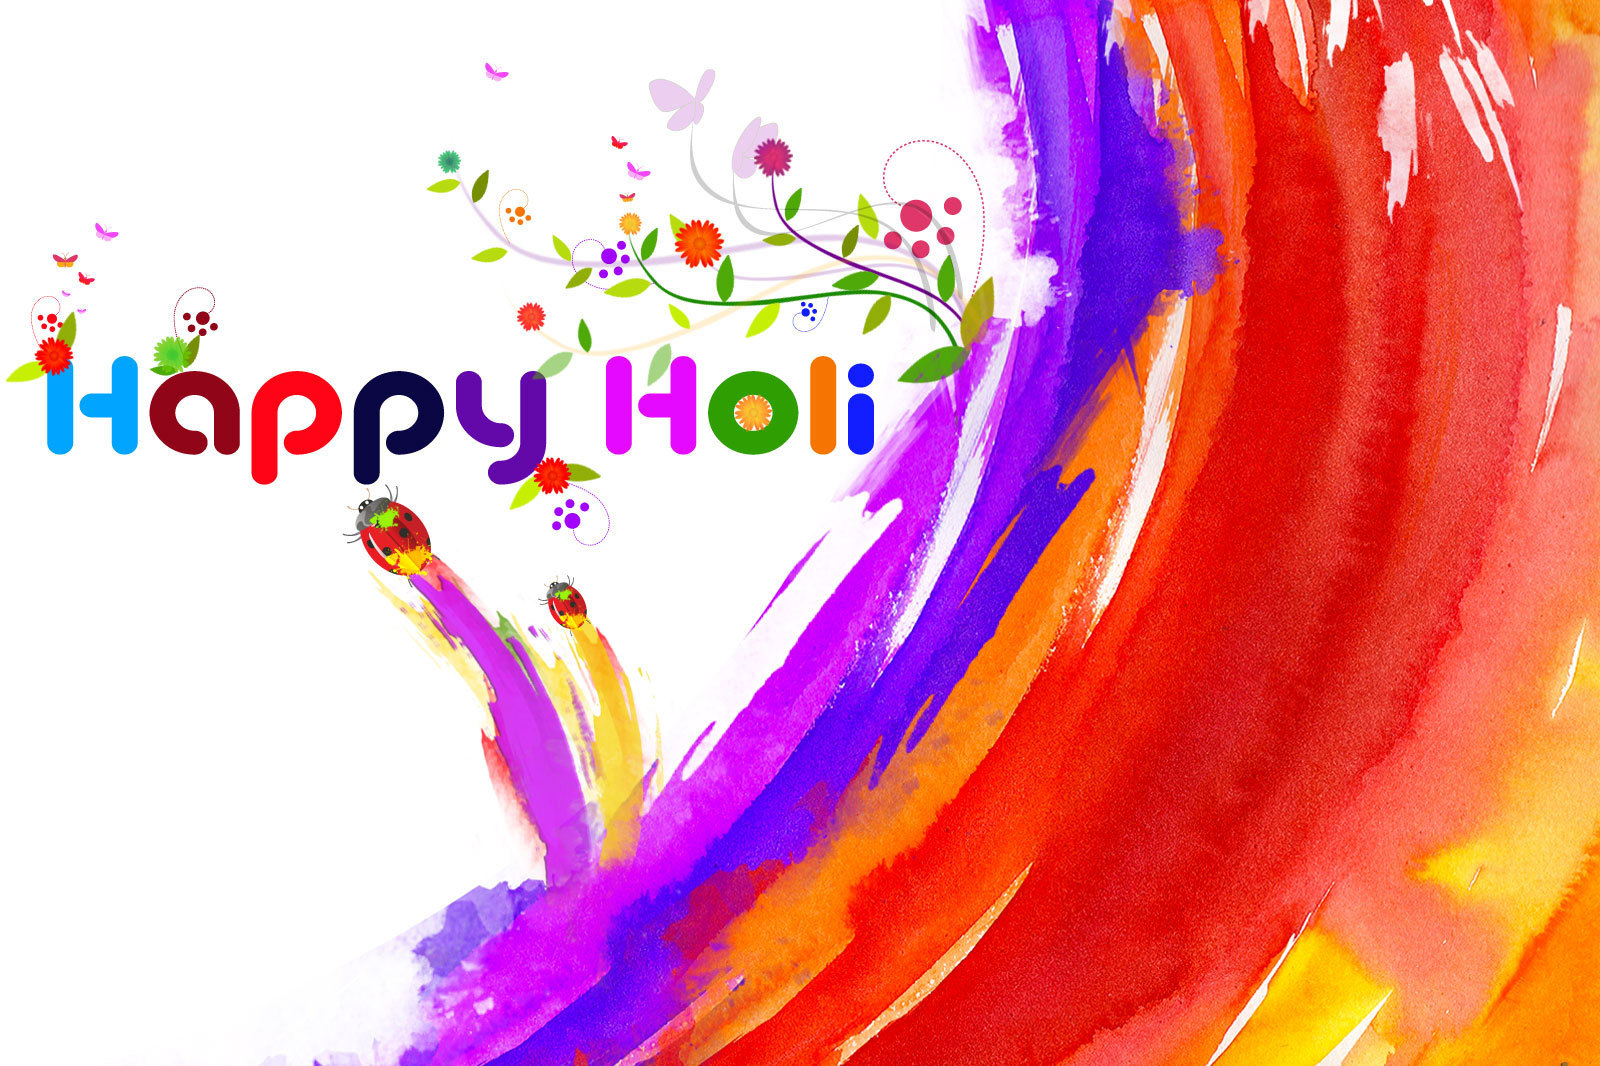 HD Happy Holi Wallpaper